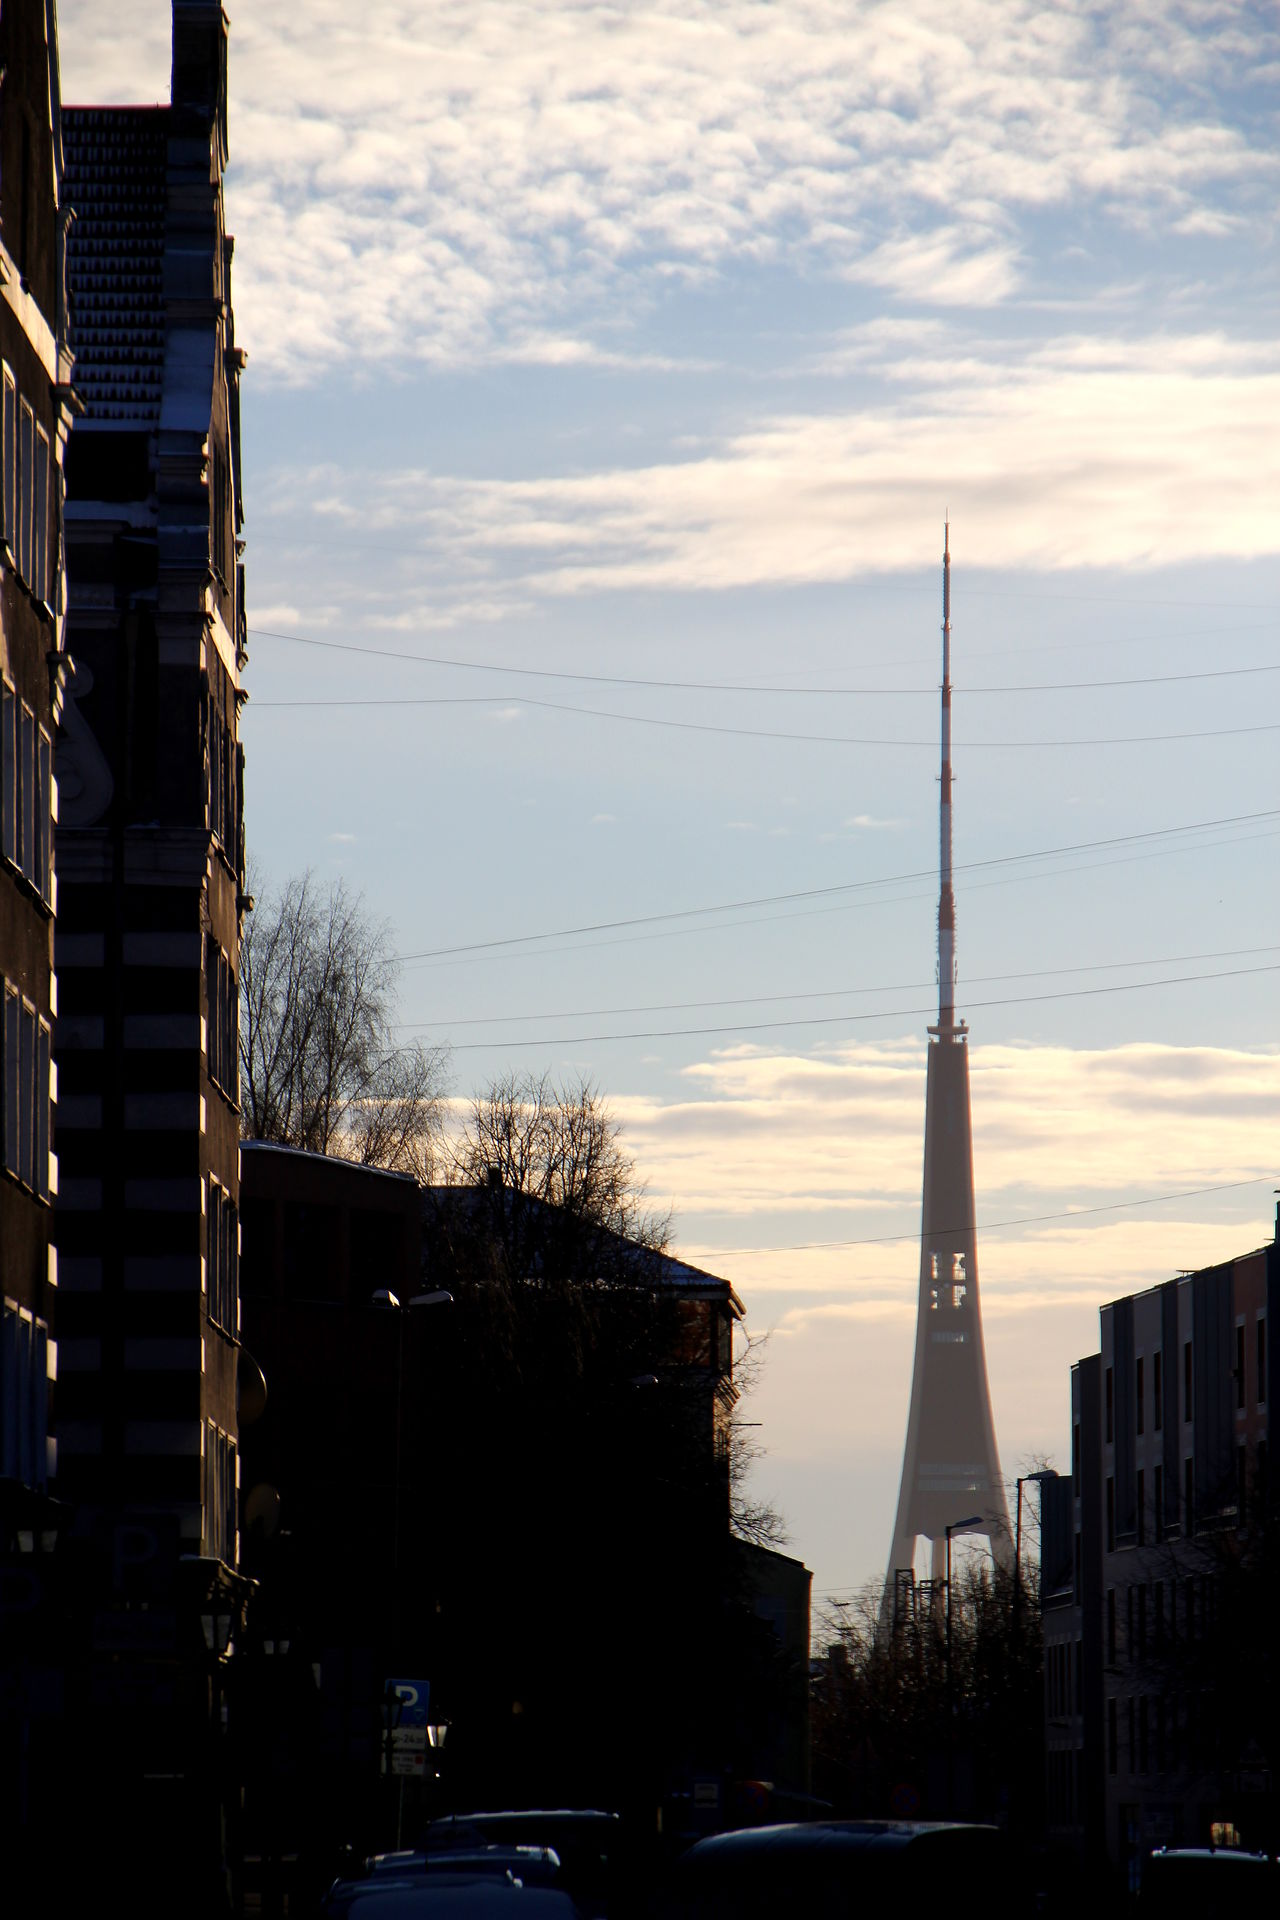 Antenna - Aerial Architecture Bare Tree Broadcasting Building Exterior Built_Structure City Cloud - Sky Day Nature No People Outdoors Riga RigaCity Sky Skyscraper Tall - High Technology Tower Tree Winter The City Light Minimalist Architecture Welcome To Black The Architect - 2017 EyeEm Awards Neighborhood Map Let's Go. Together.